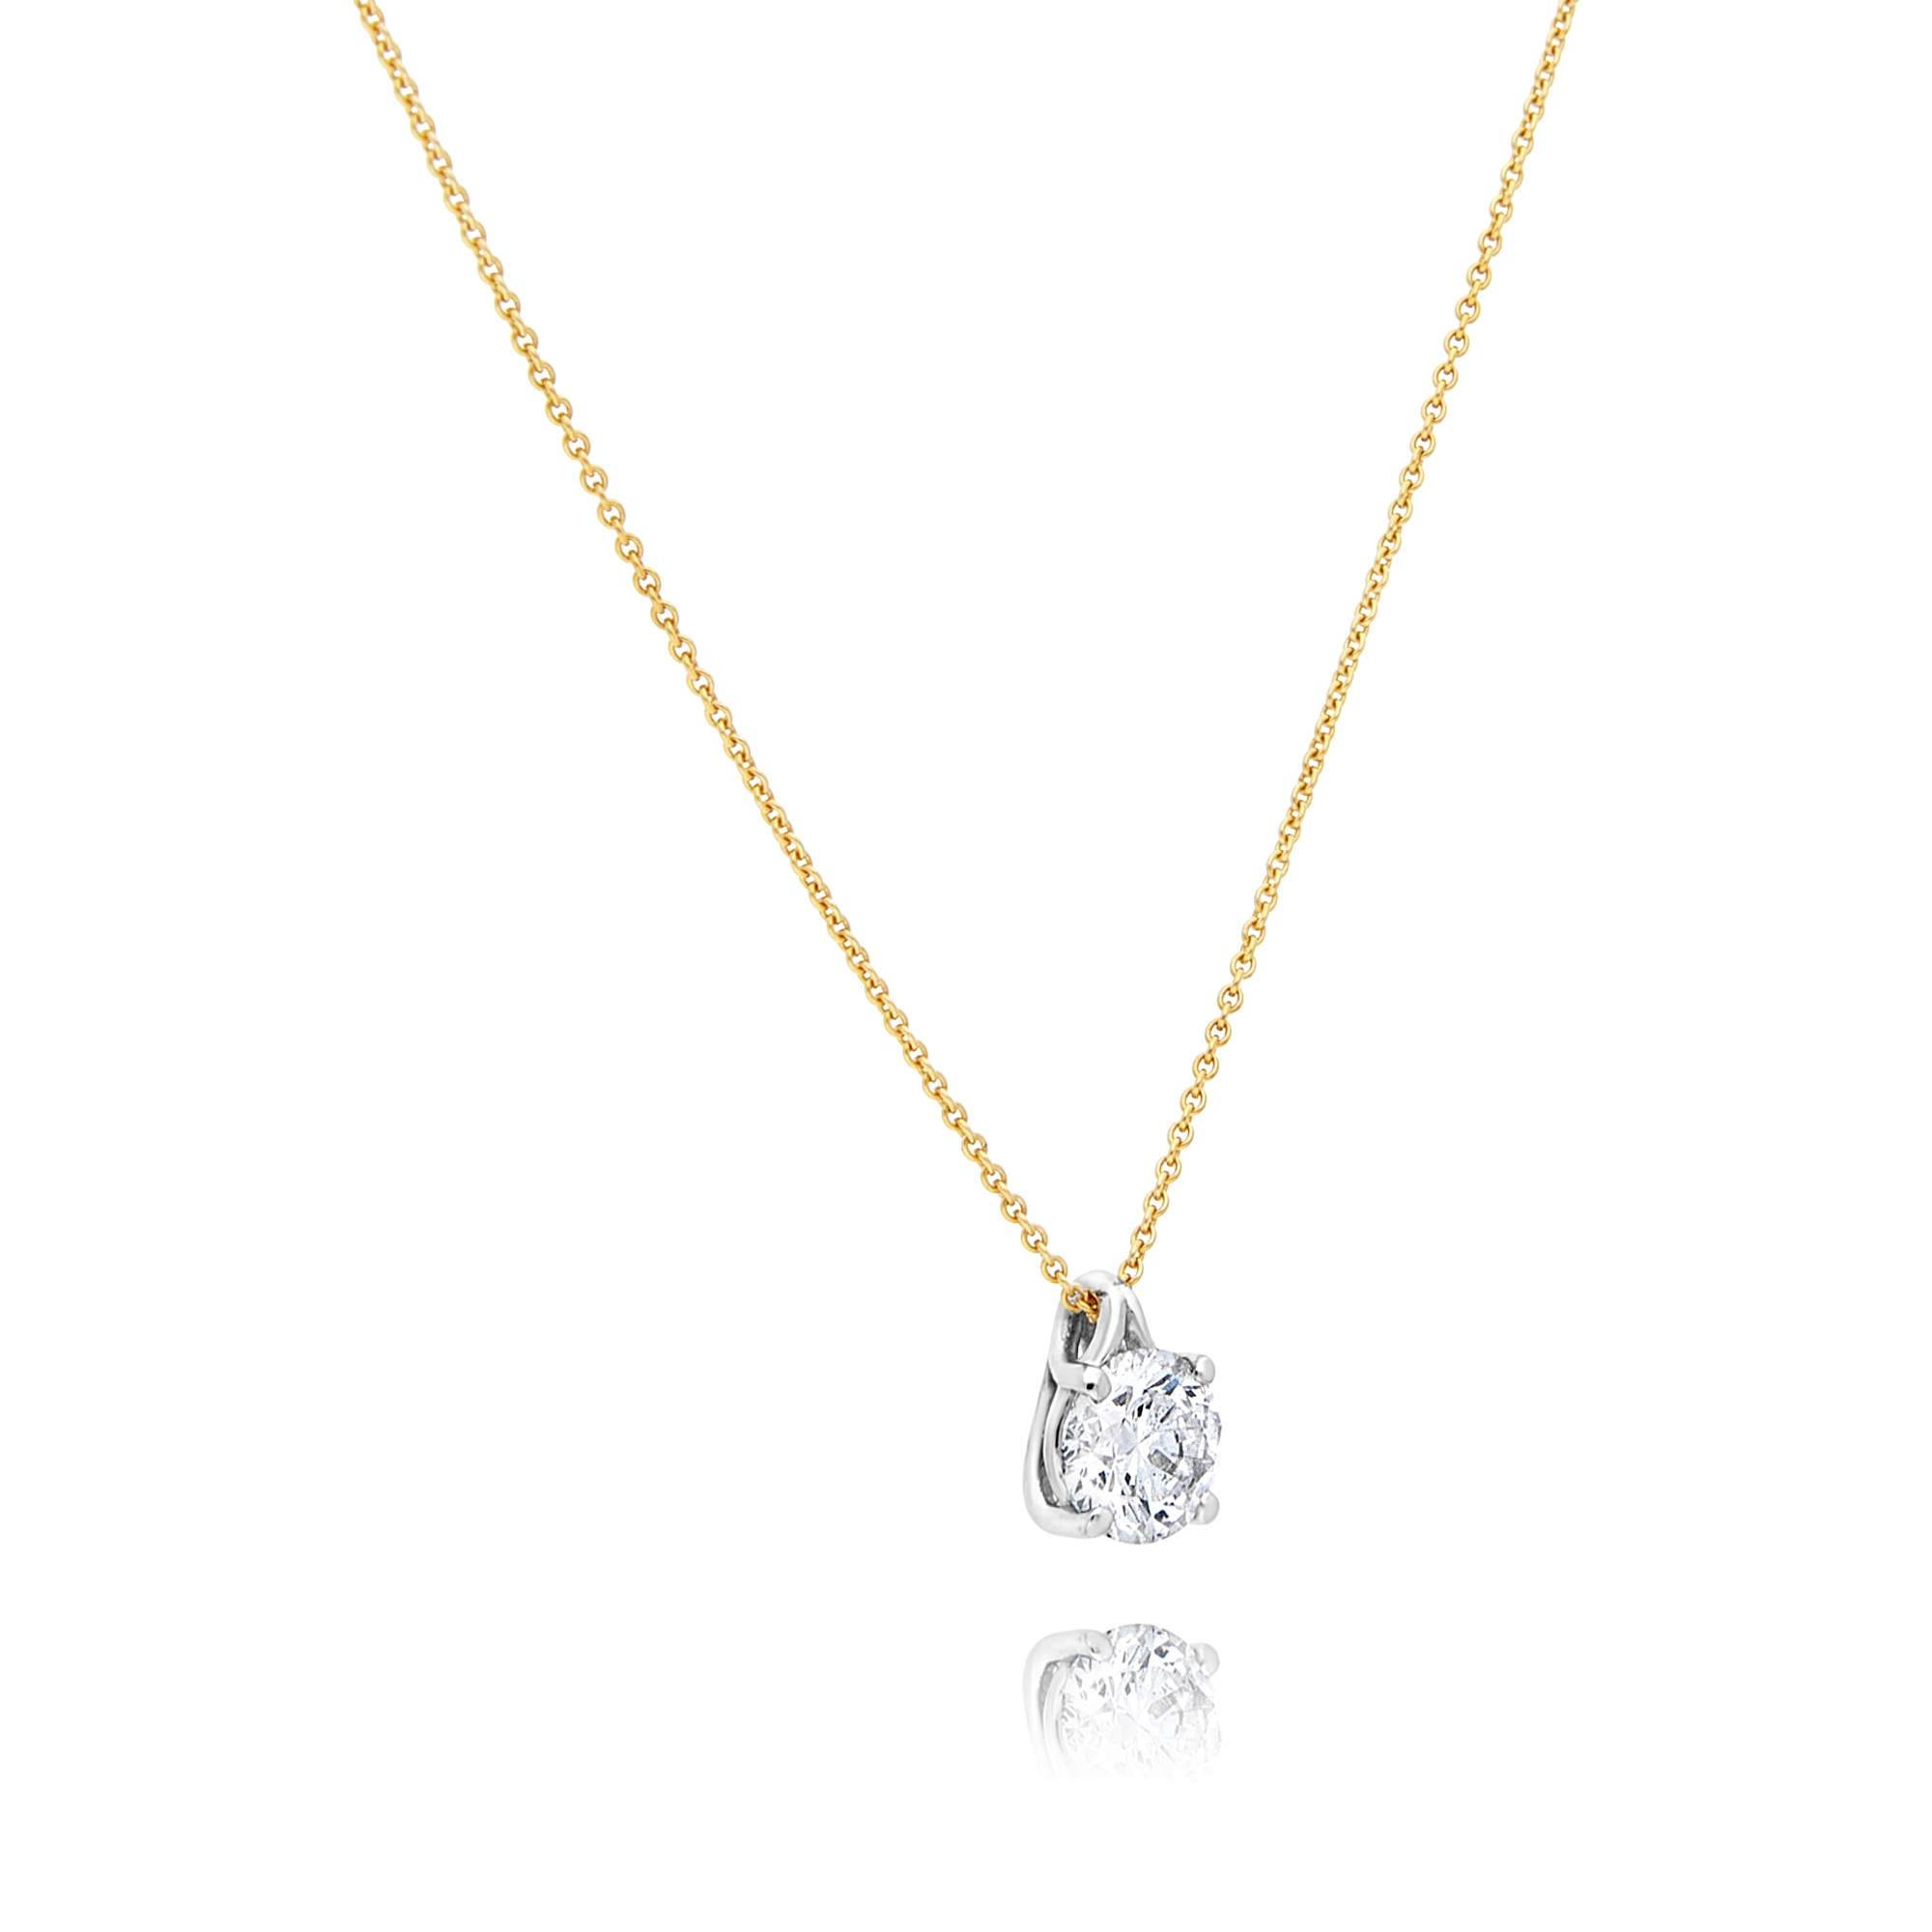 18ct Yellow Gold Solitaire Diamond Pendant